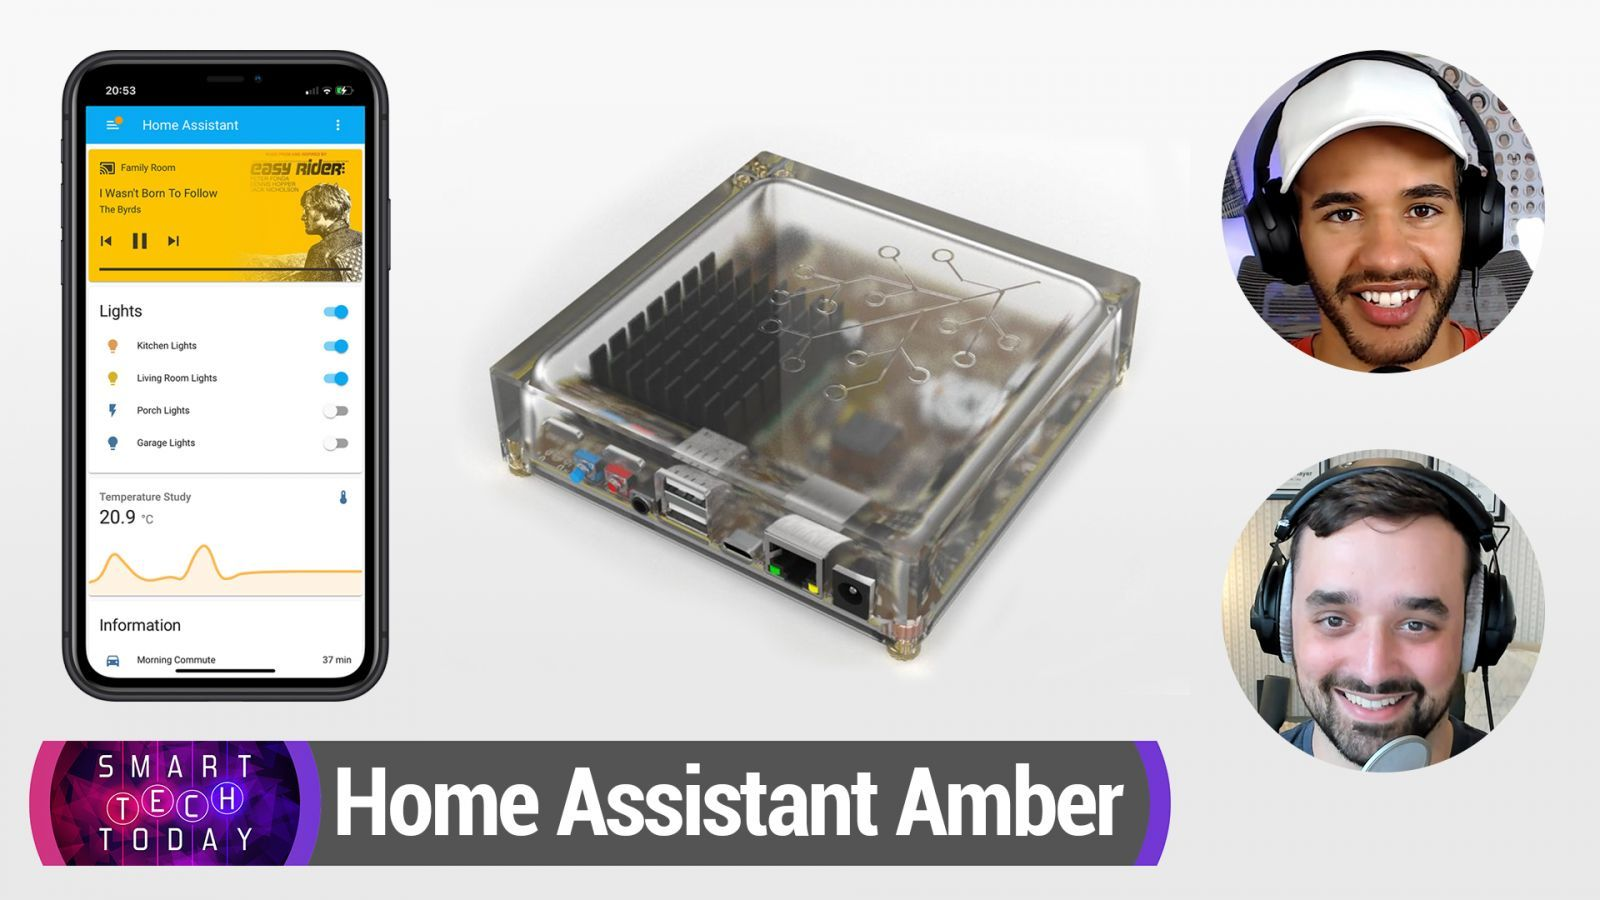 Home Assistant in a Box